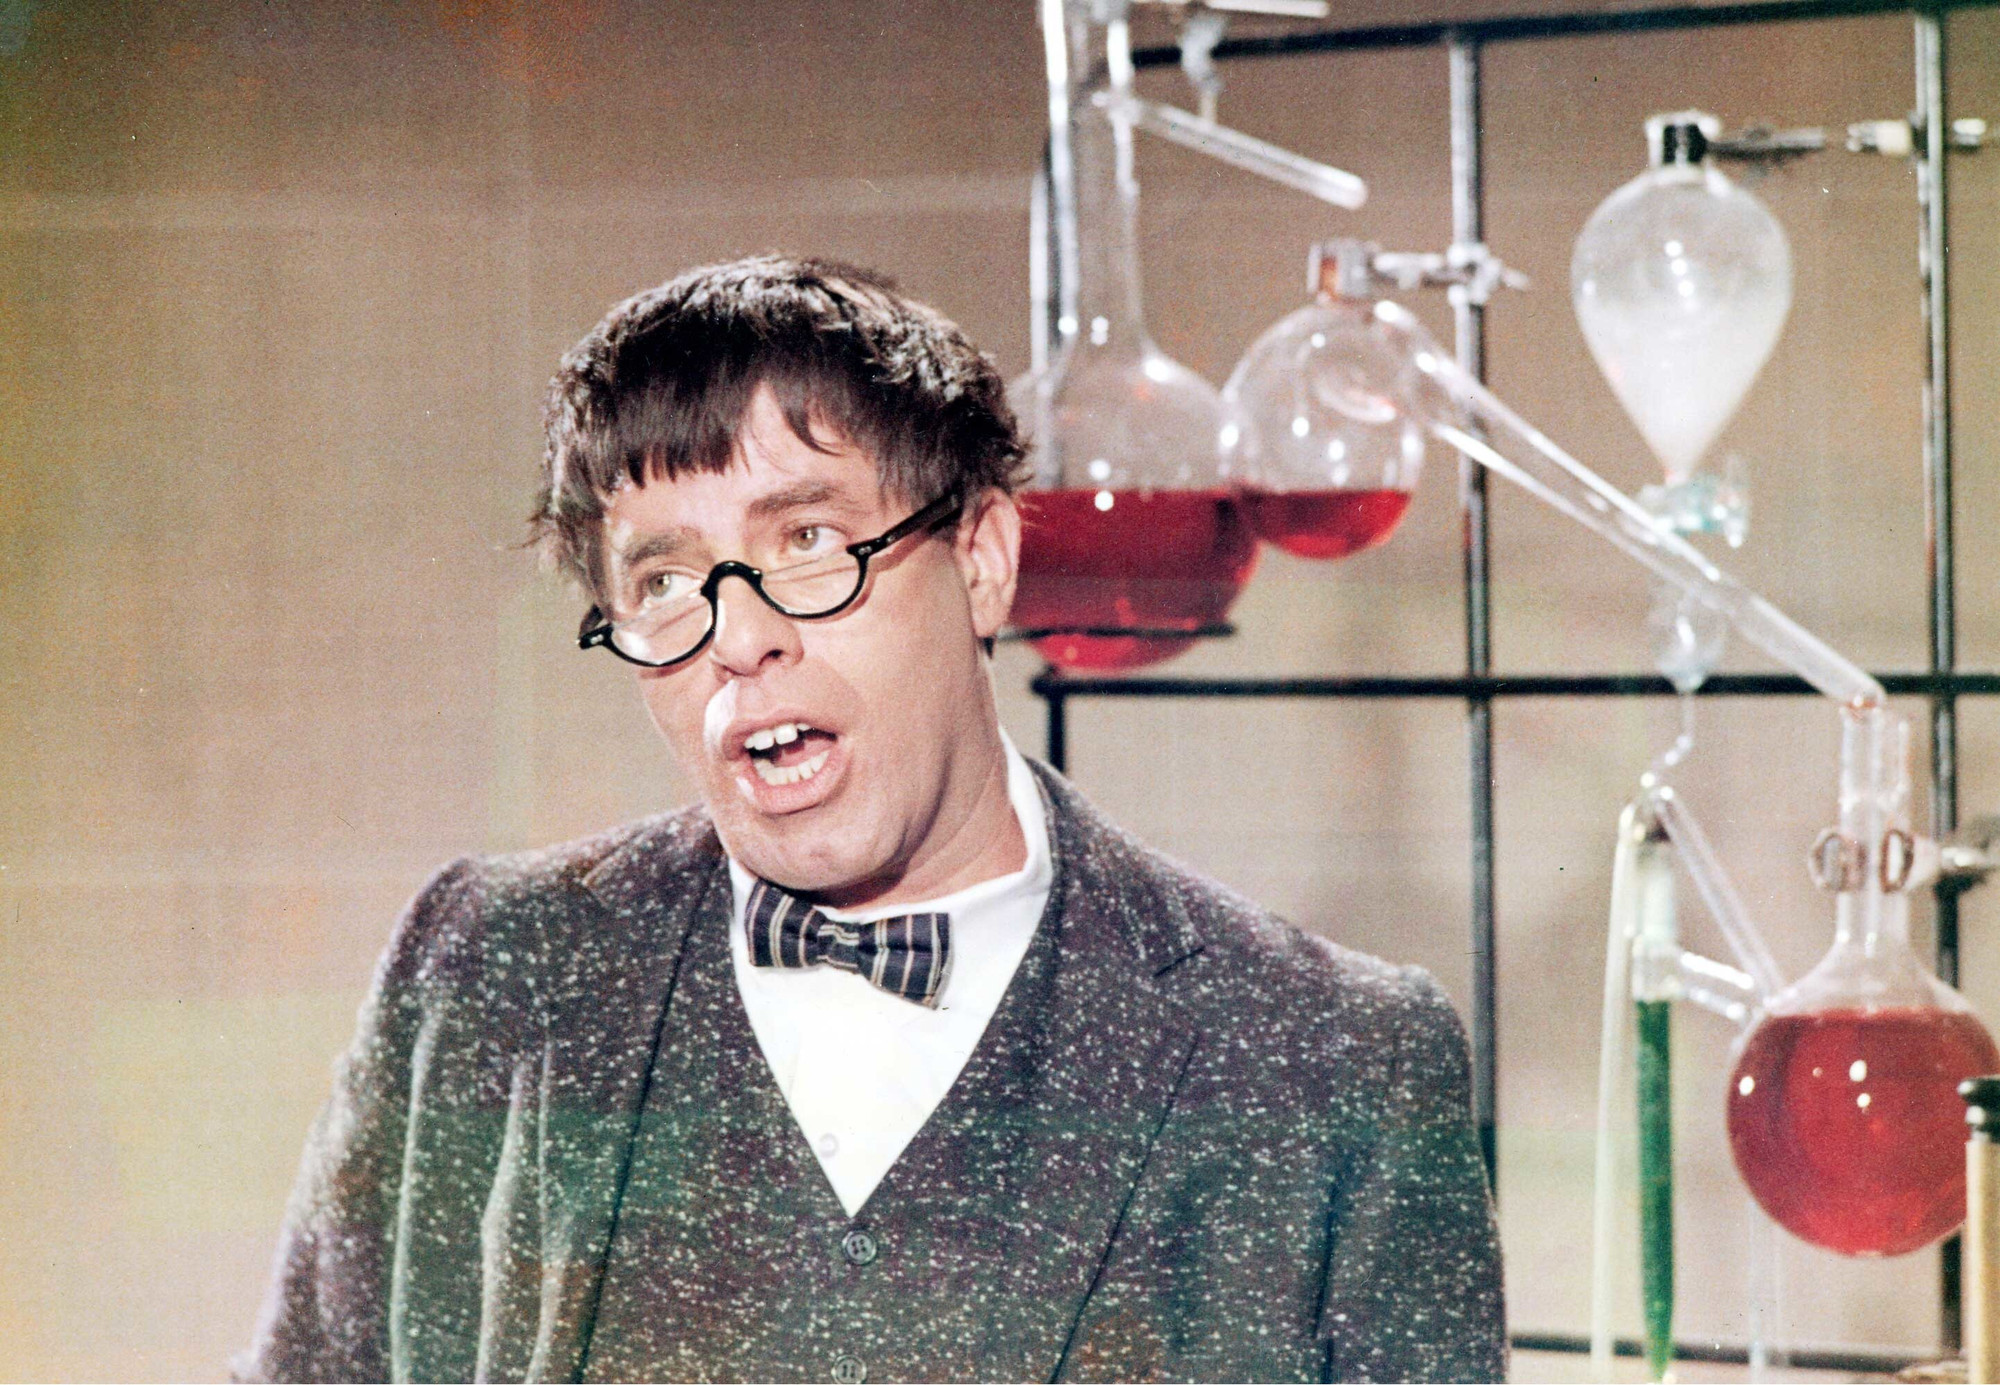 Jerry Lewis as the Nutty Professor on The Jerry Lewis Show, NBC, 1967–69. Courtesy NBC/Photofest